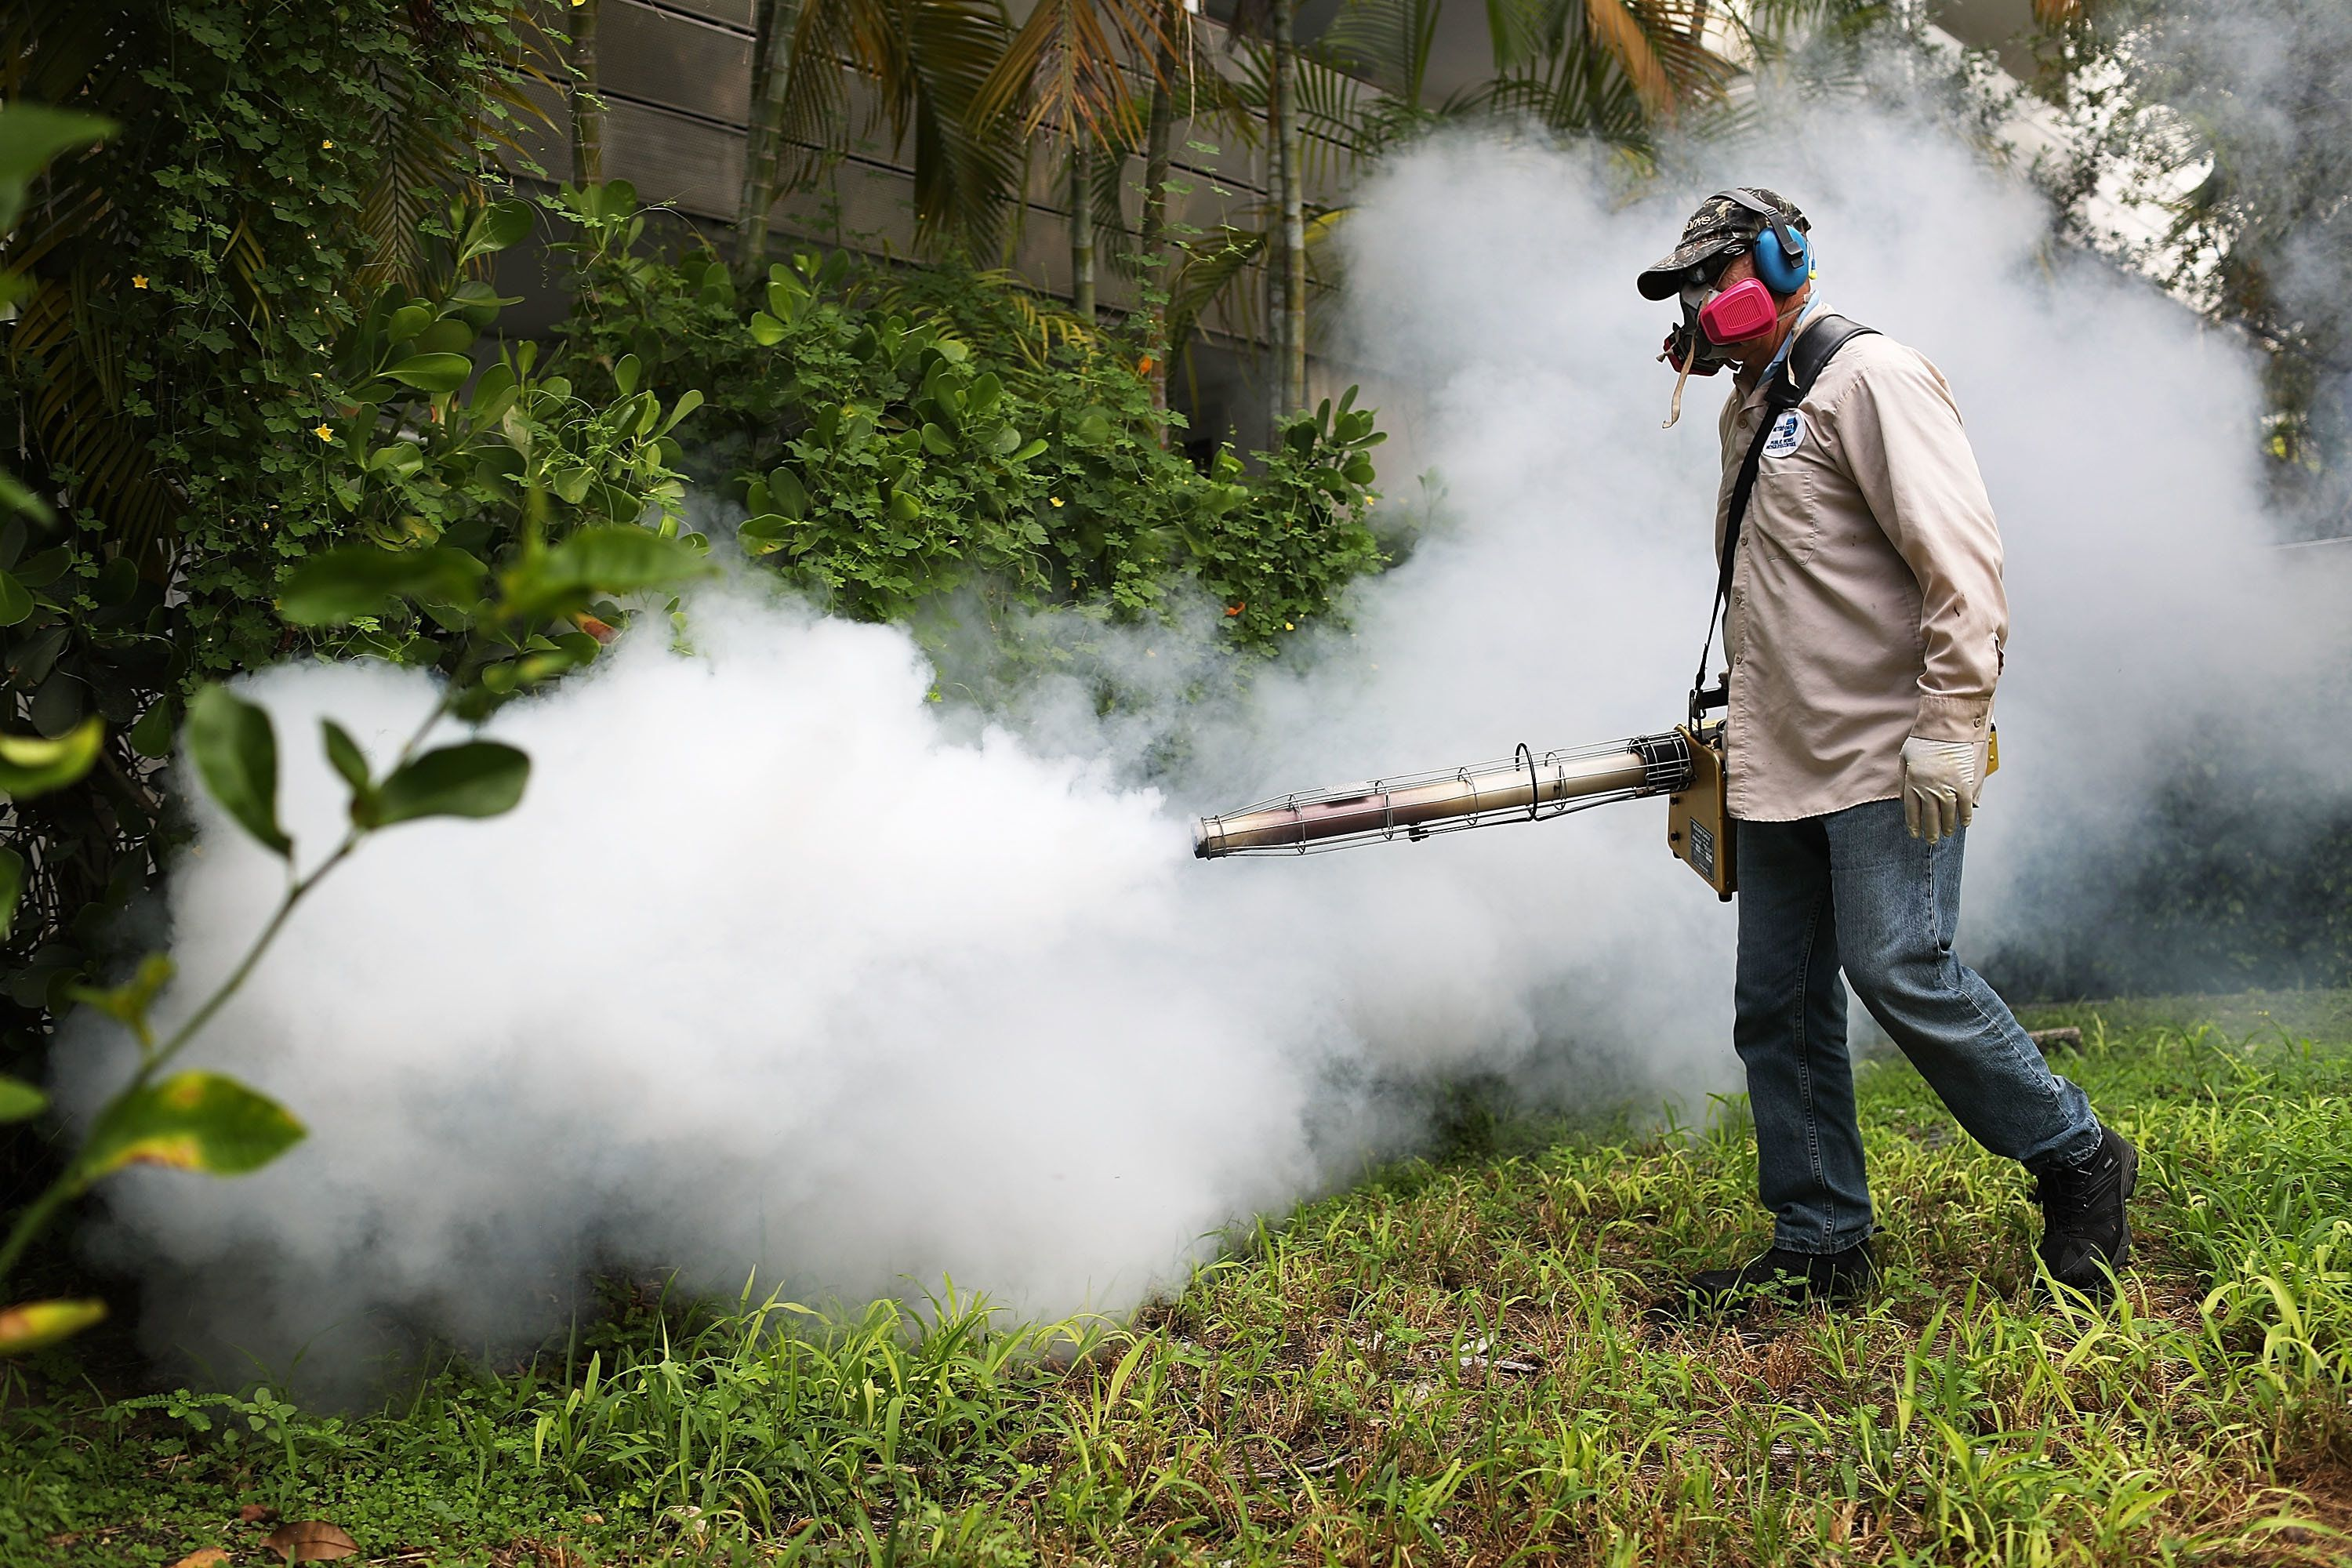 MIAMI BEACH, FL - AUGUST 24:  Carlos Varas, a Miami-Dade County mosquito control inspector, uses a Golden Eagle blower to spray pesticide to kill mosquitos in the Miami Beach neighborhood as the county fights to control the Zika virus outbreak on August 24, 2016 in Miami Beach, Florida. The number of locally transmitted cases in Wynwood and Miami Beach has reached 41.  (Photo by Joe Raedle/Getty Images)